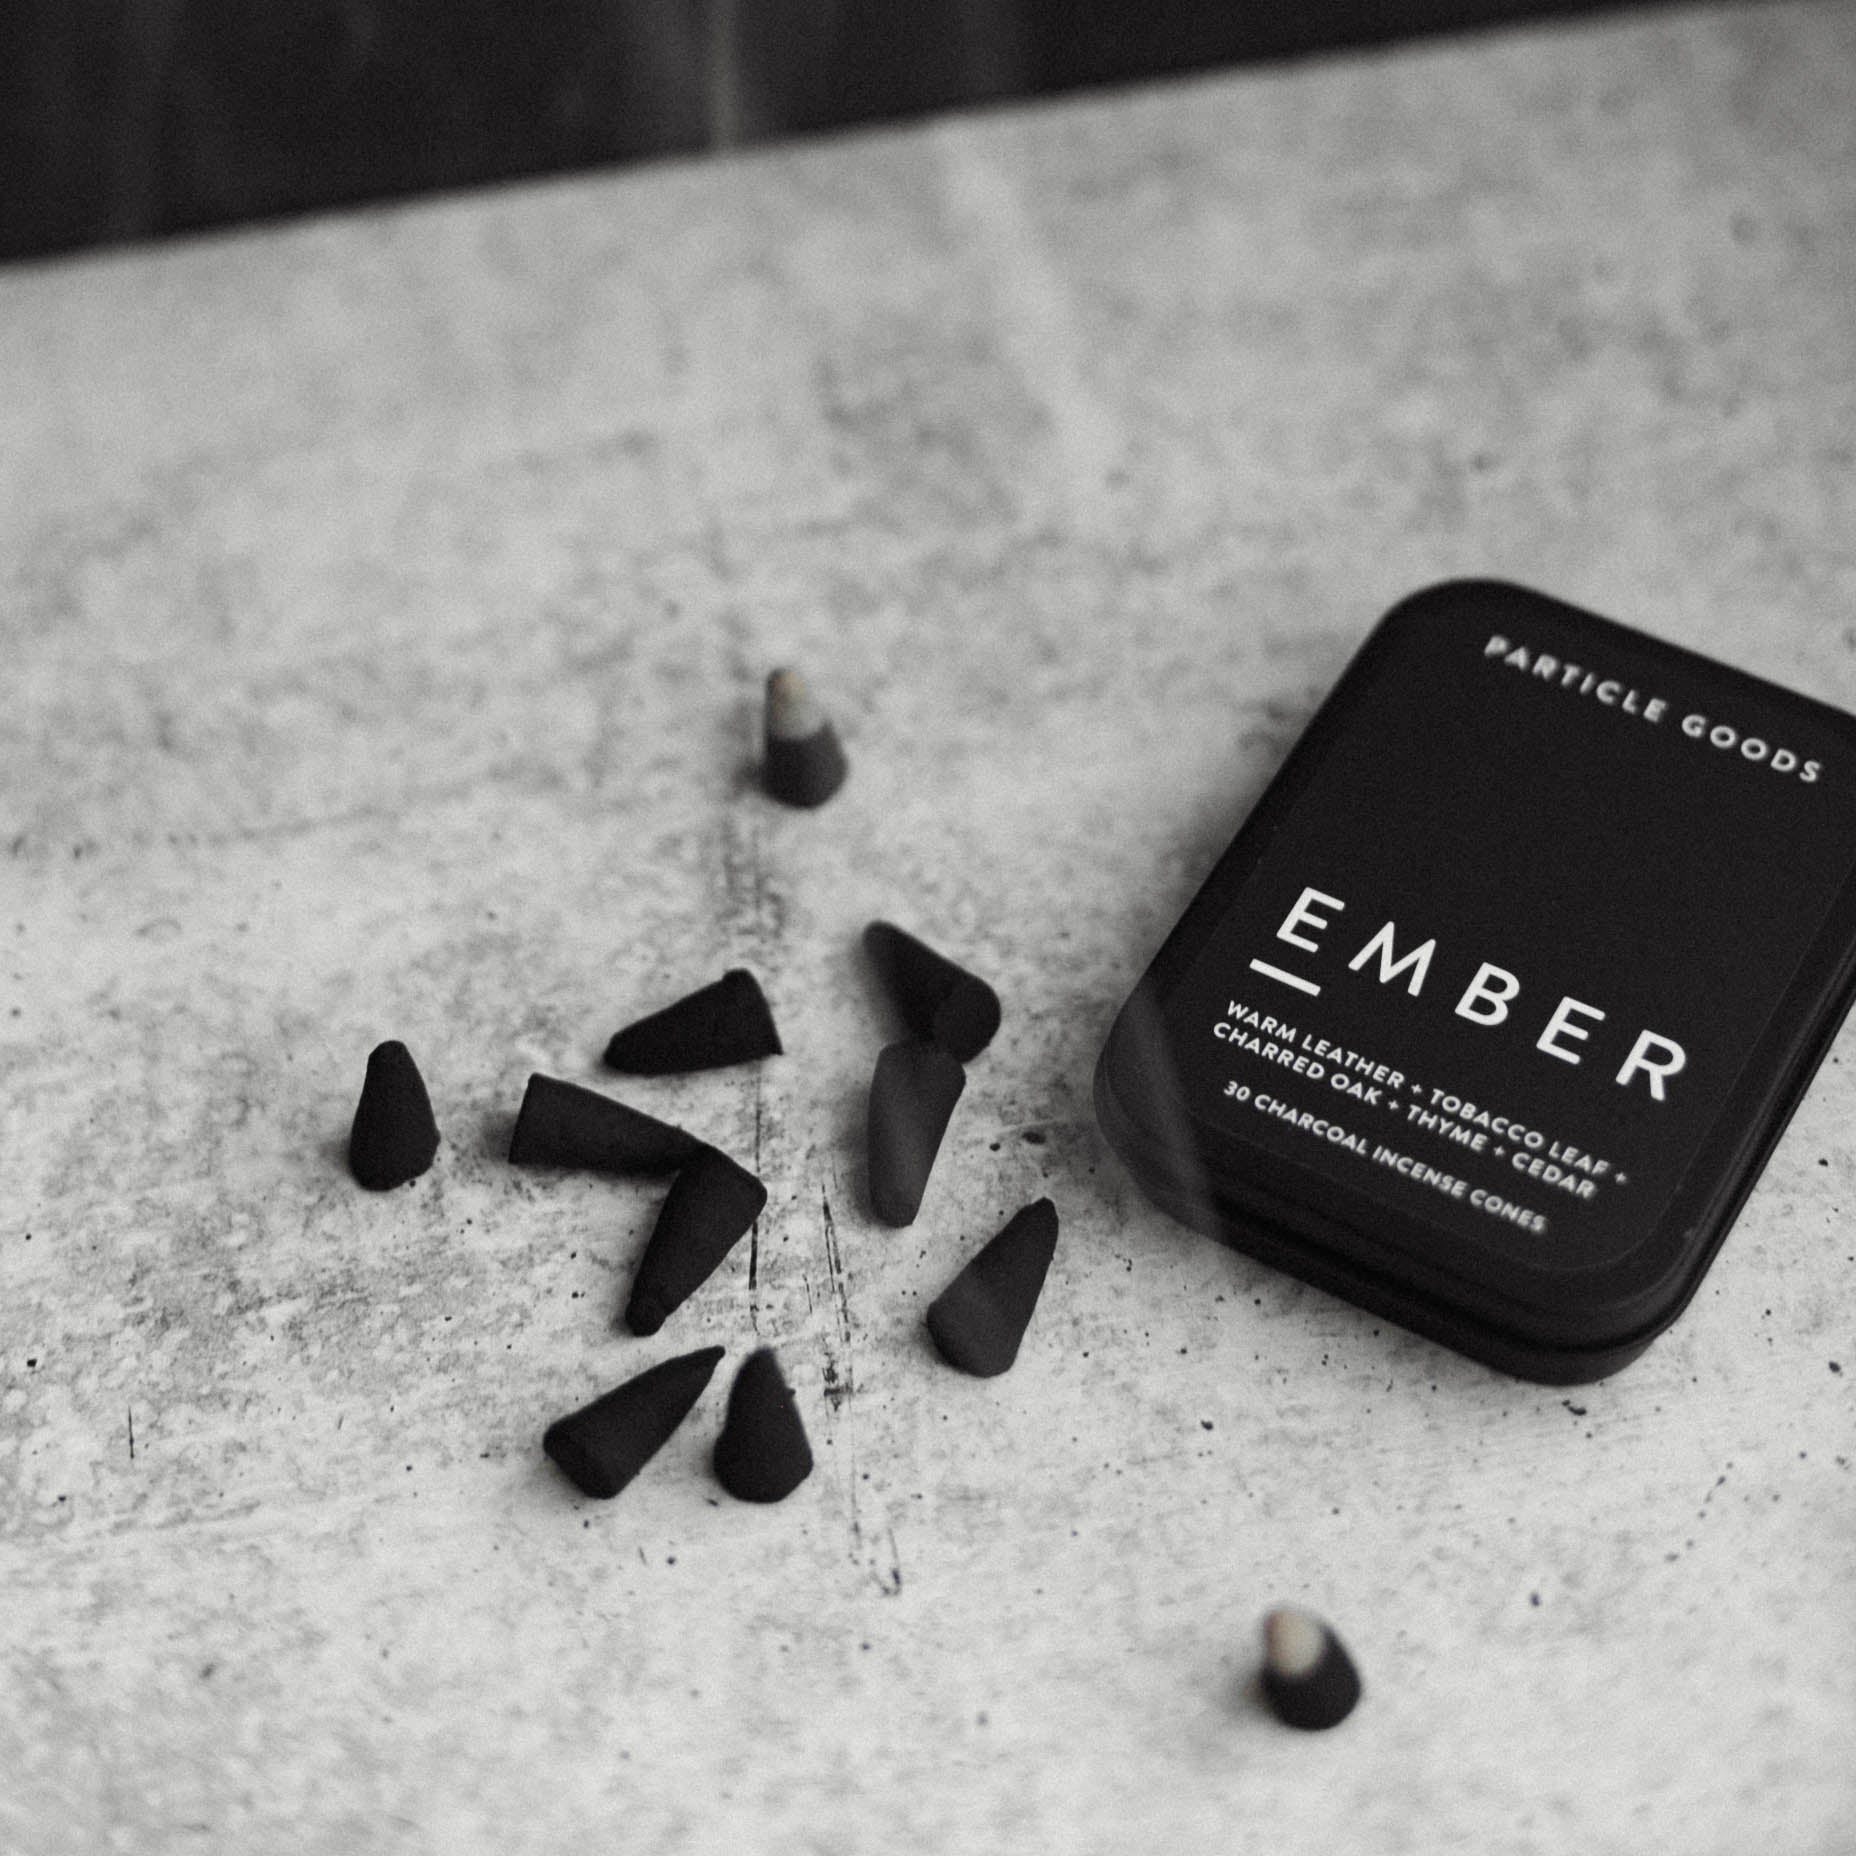 WHSL Ember Incense Cones